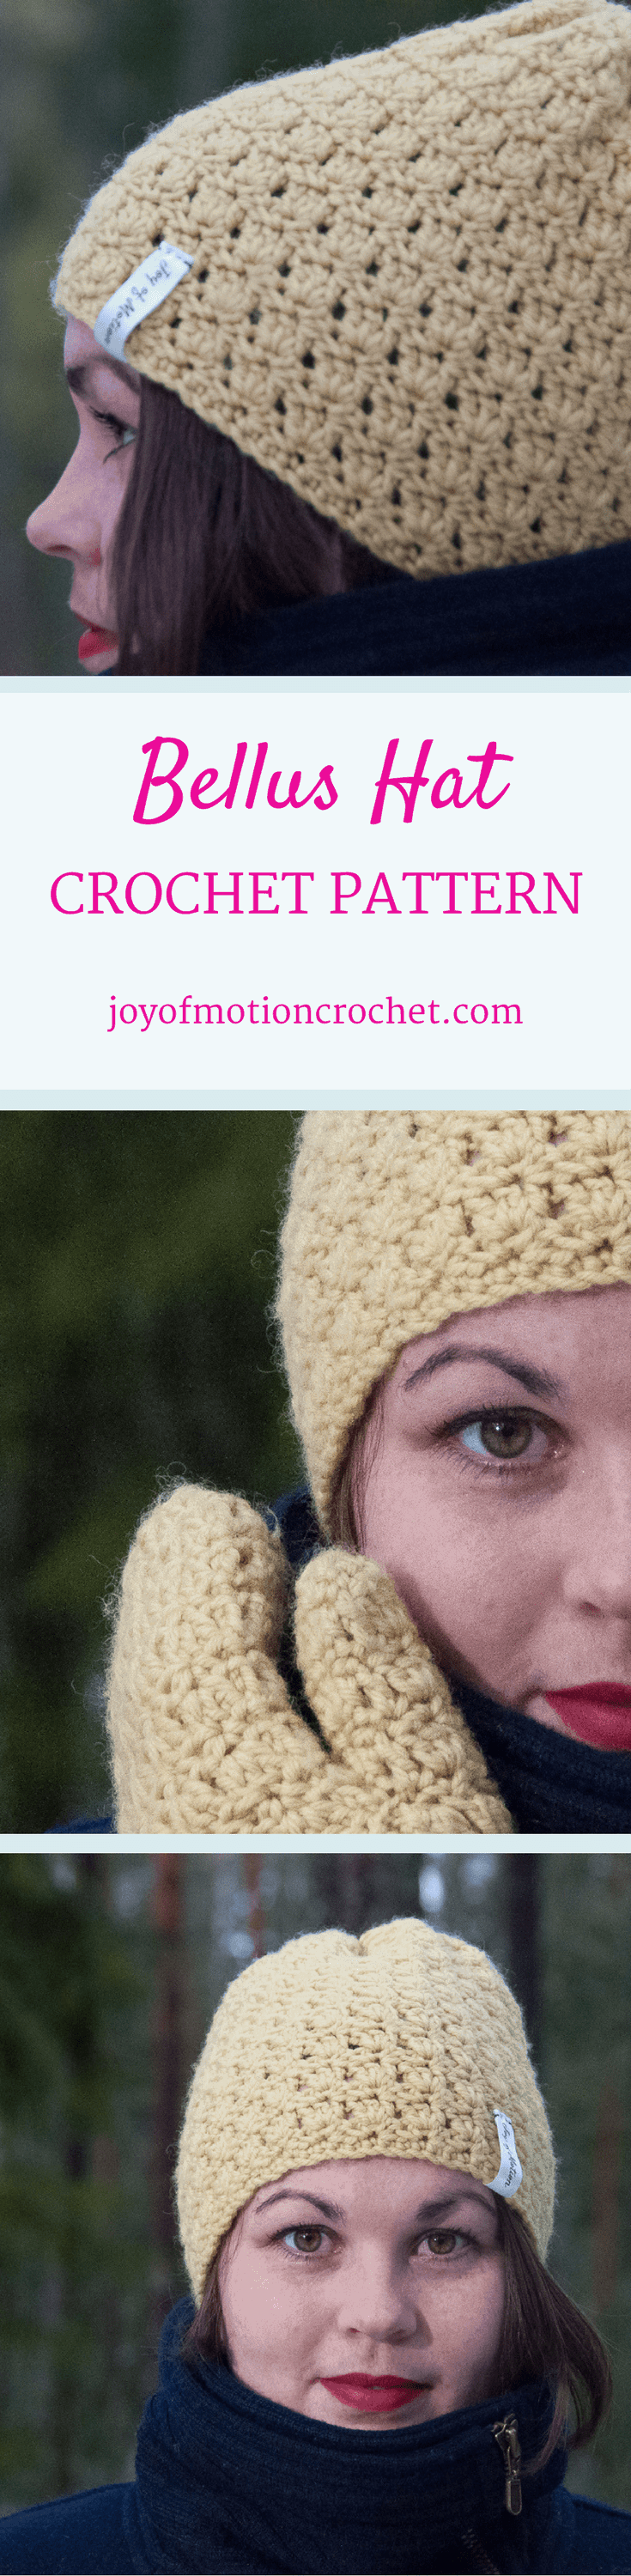 The Bellus hat. Crochet pattern for a warm winter hat. This beanie pattern has a huge size range from 12 months to adult size| Hat crochet patterns. Crochet pattern hats. Beanie crochet patterns. Hood crochet pattern. Hat crochet designs. Slouchy hat patterns. Slouchy beanie crochet patterns. Animal crochet pattern hats. Women's crochet pattern hat. Baby crochet pattern beanie. Beanie crochet pattern children's. Click link to learn more.